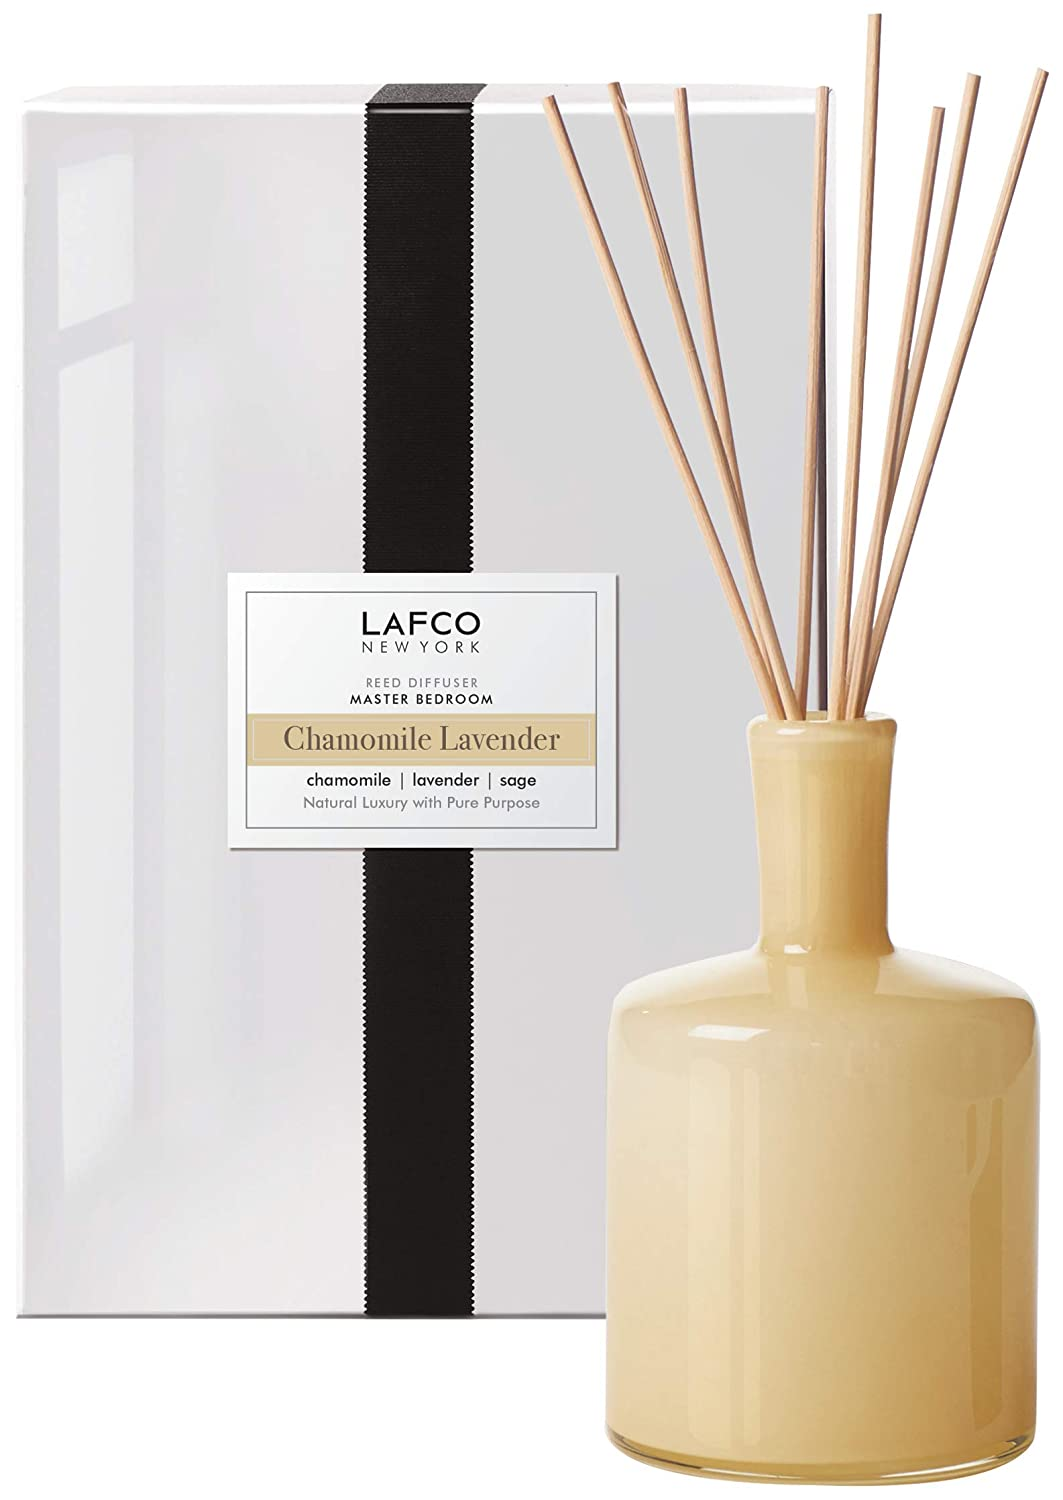 LAFCO New York Signature Scented Reed Diffuser (Chamomile Lavender, Master Bedroom- 15fl. oz.)